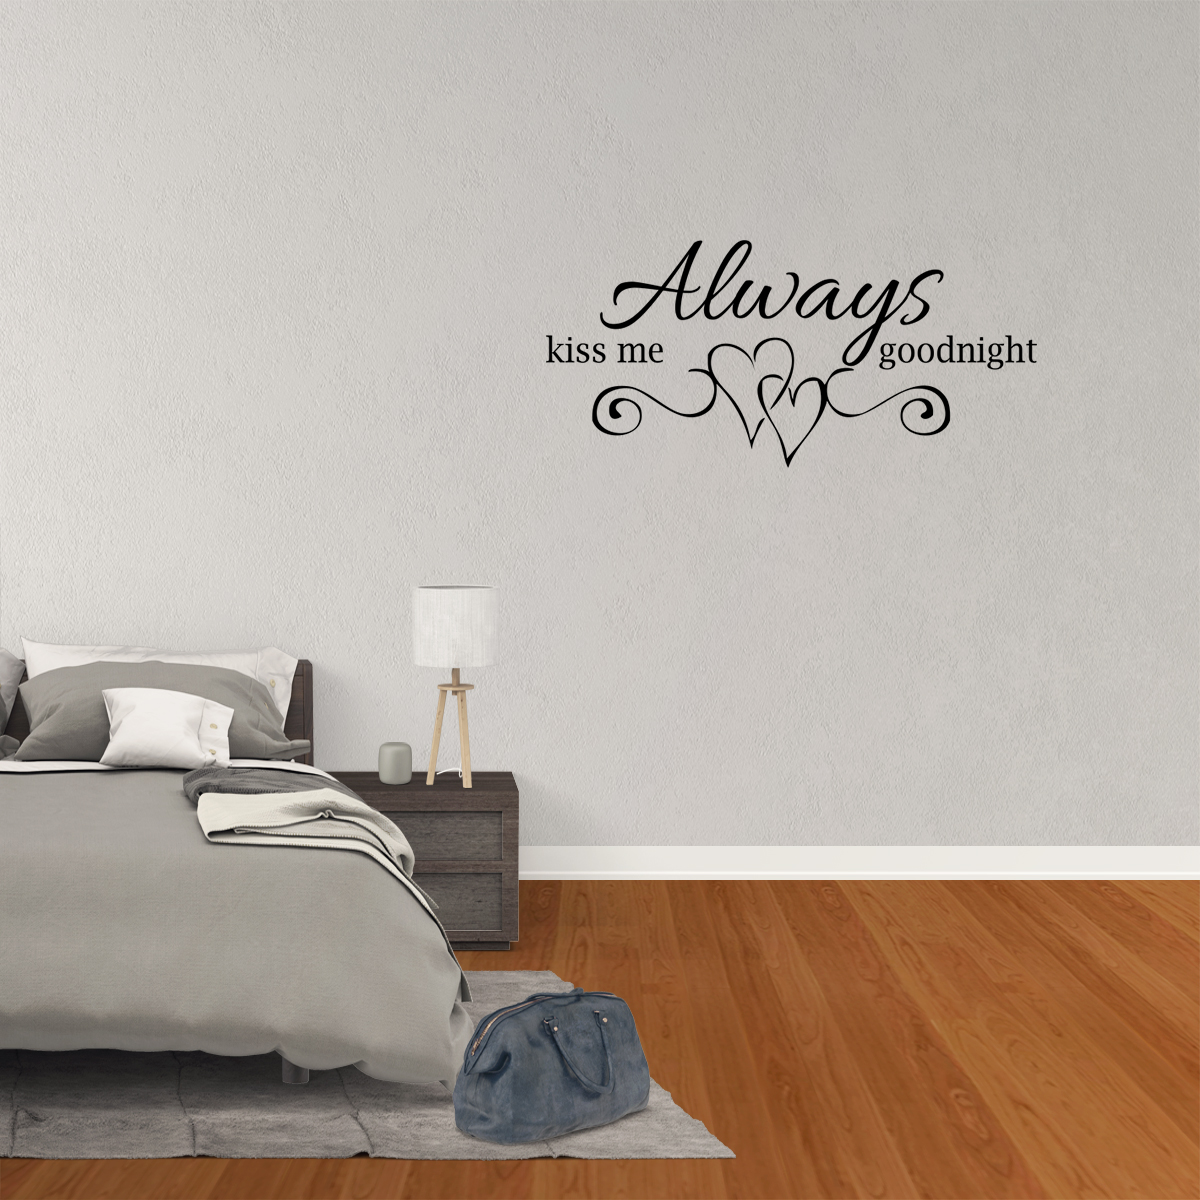 Always Kiss Me Goodnight Vinyl Wall Decal Quotes Home Decor JR07